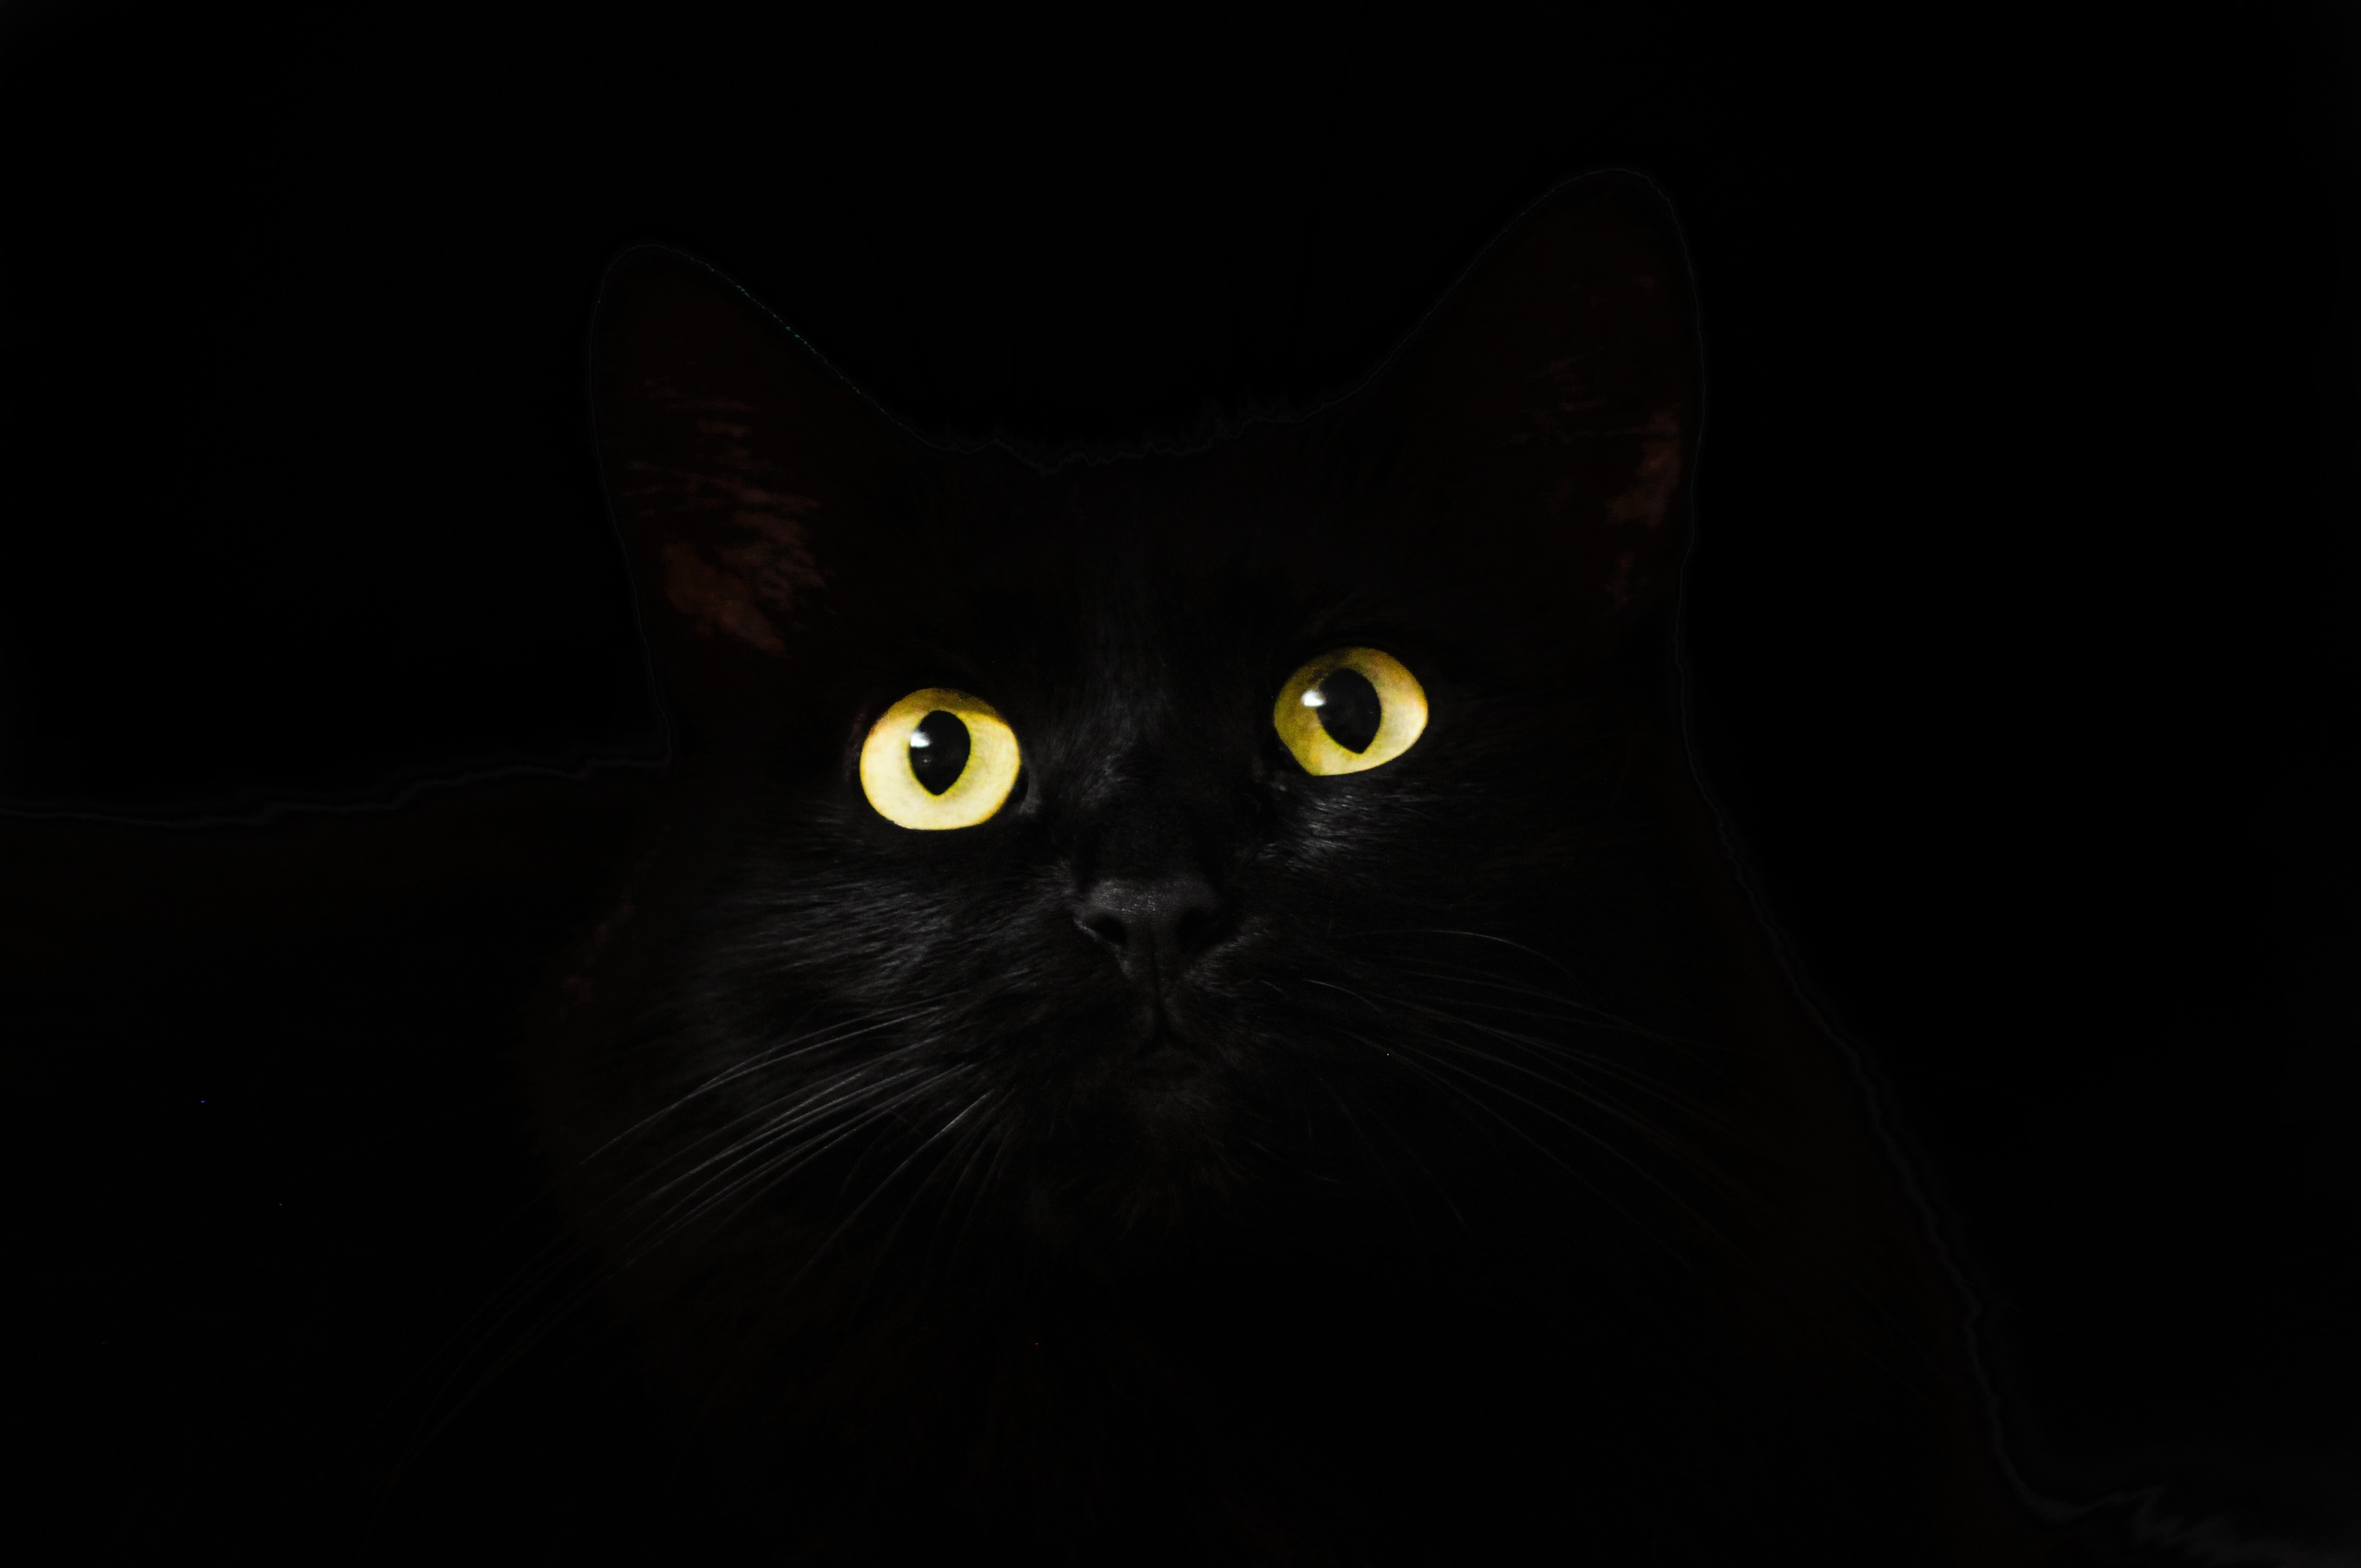 2560x1700 Black Cat Eyes Dark 5k Chromebook Pixel Hd 4k Wallpapers